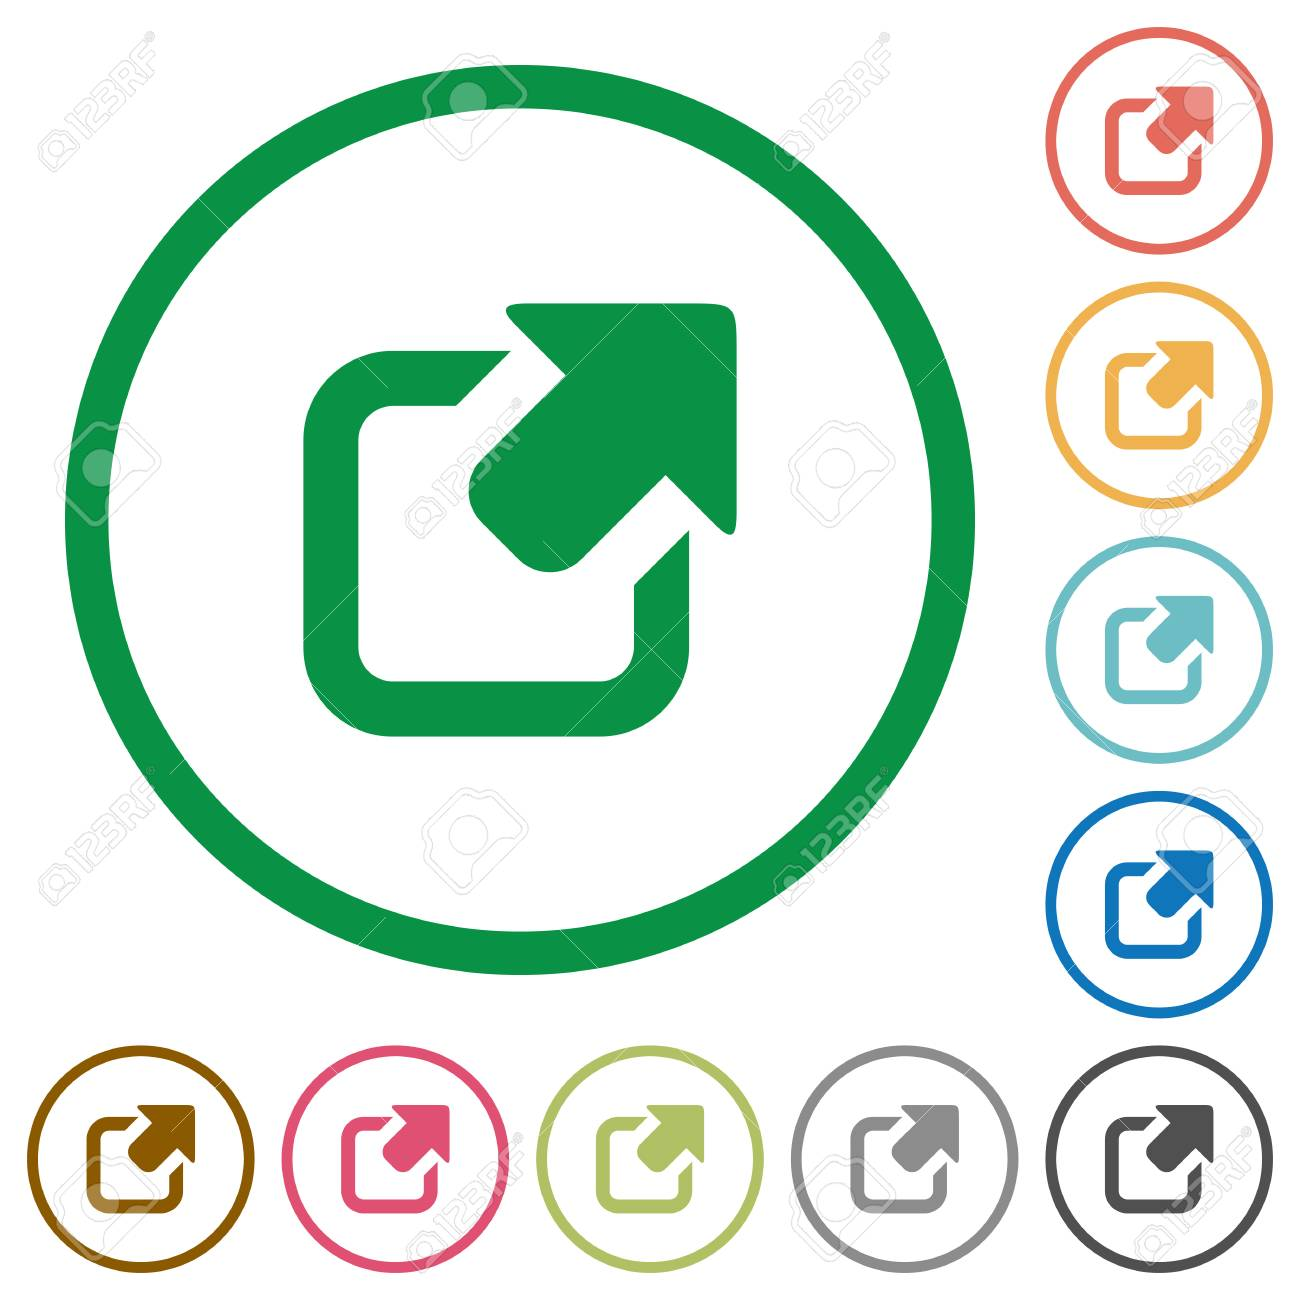 Set Of Export Color Round Outlined Flat Icons On White Background ...